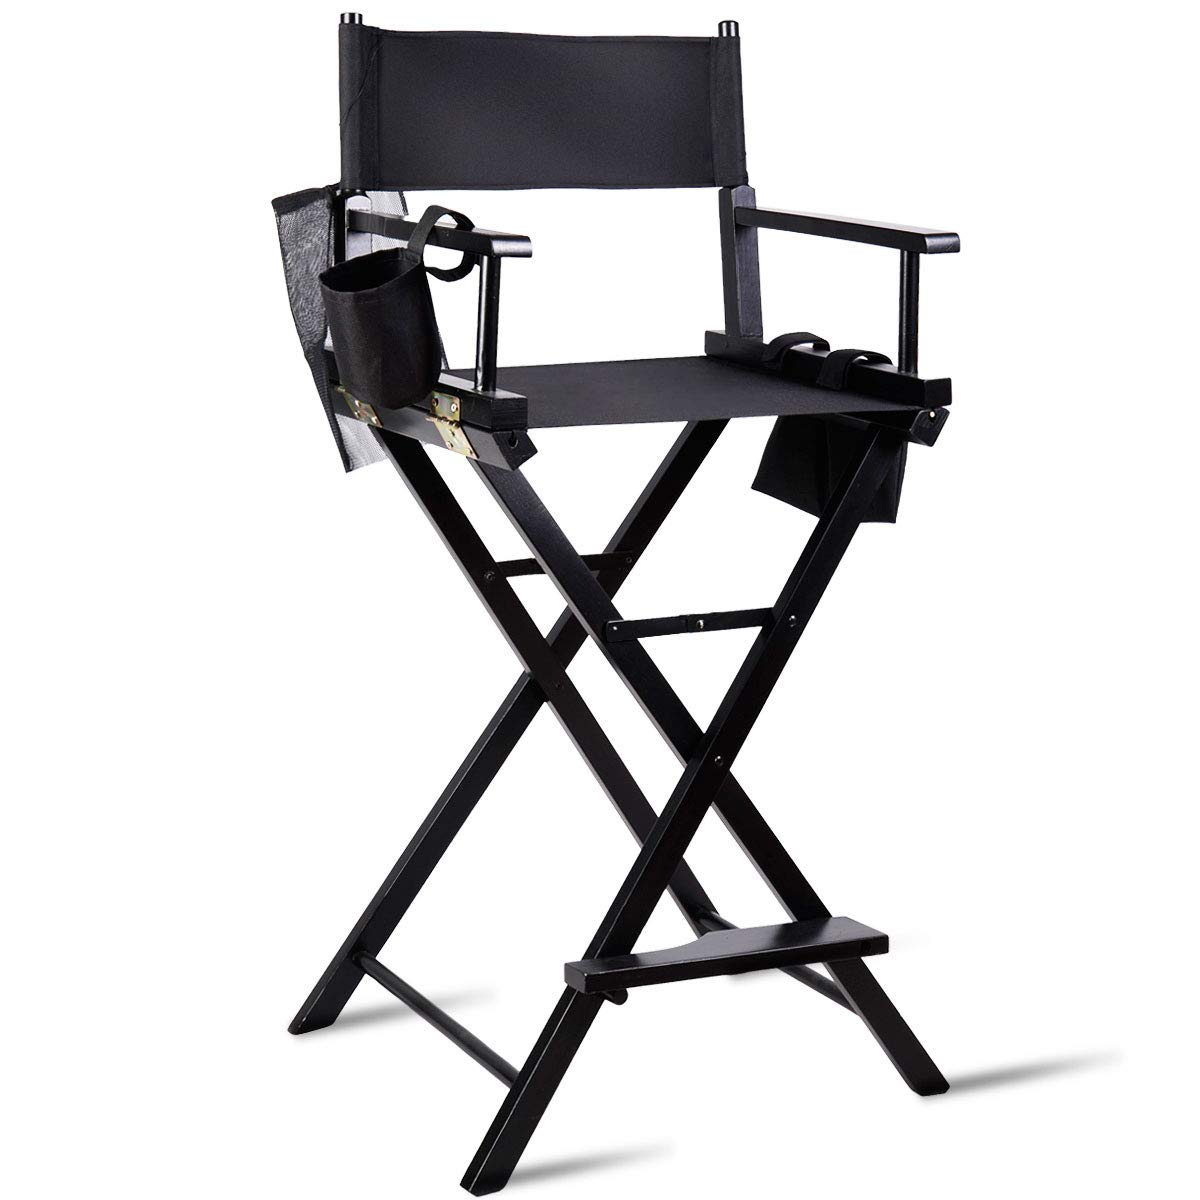 """TANGKULA Director's Chair, 30"""" Bar Height Collapsible Portable Wood Frame Foldable Tall Professional Makeup Artist Chair with Side Cup Holder, Side Storage Bag, Footrest"""